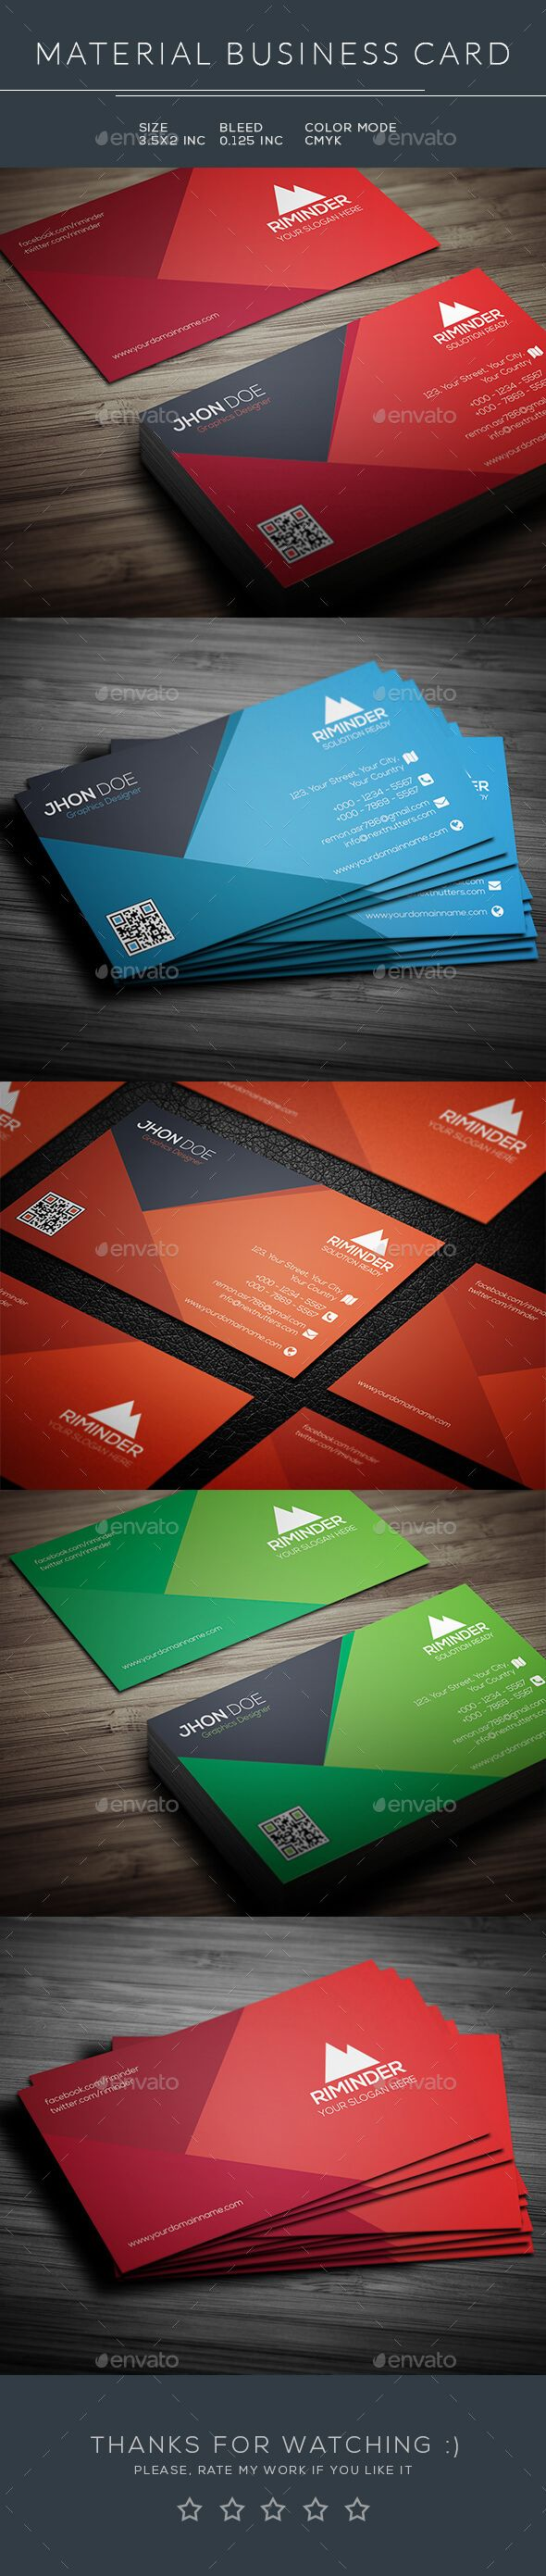 95 Best Visiting Card Images On Pinterest Business Cards Carte De